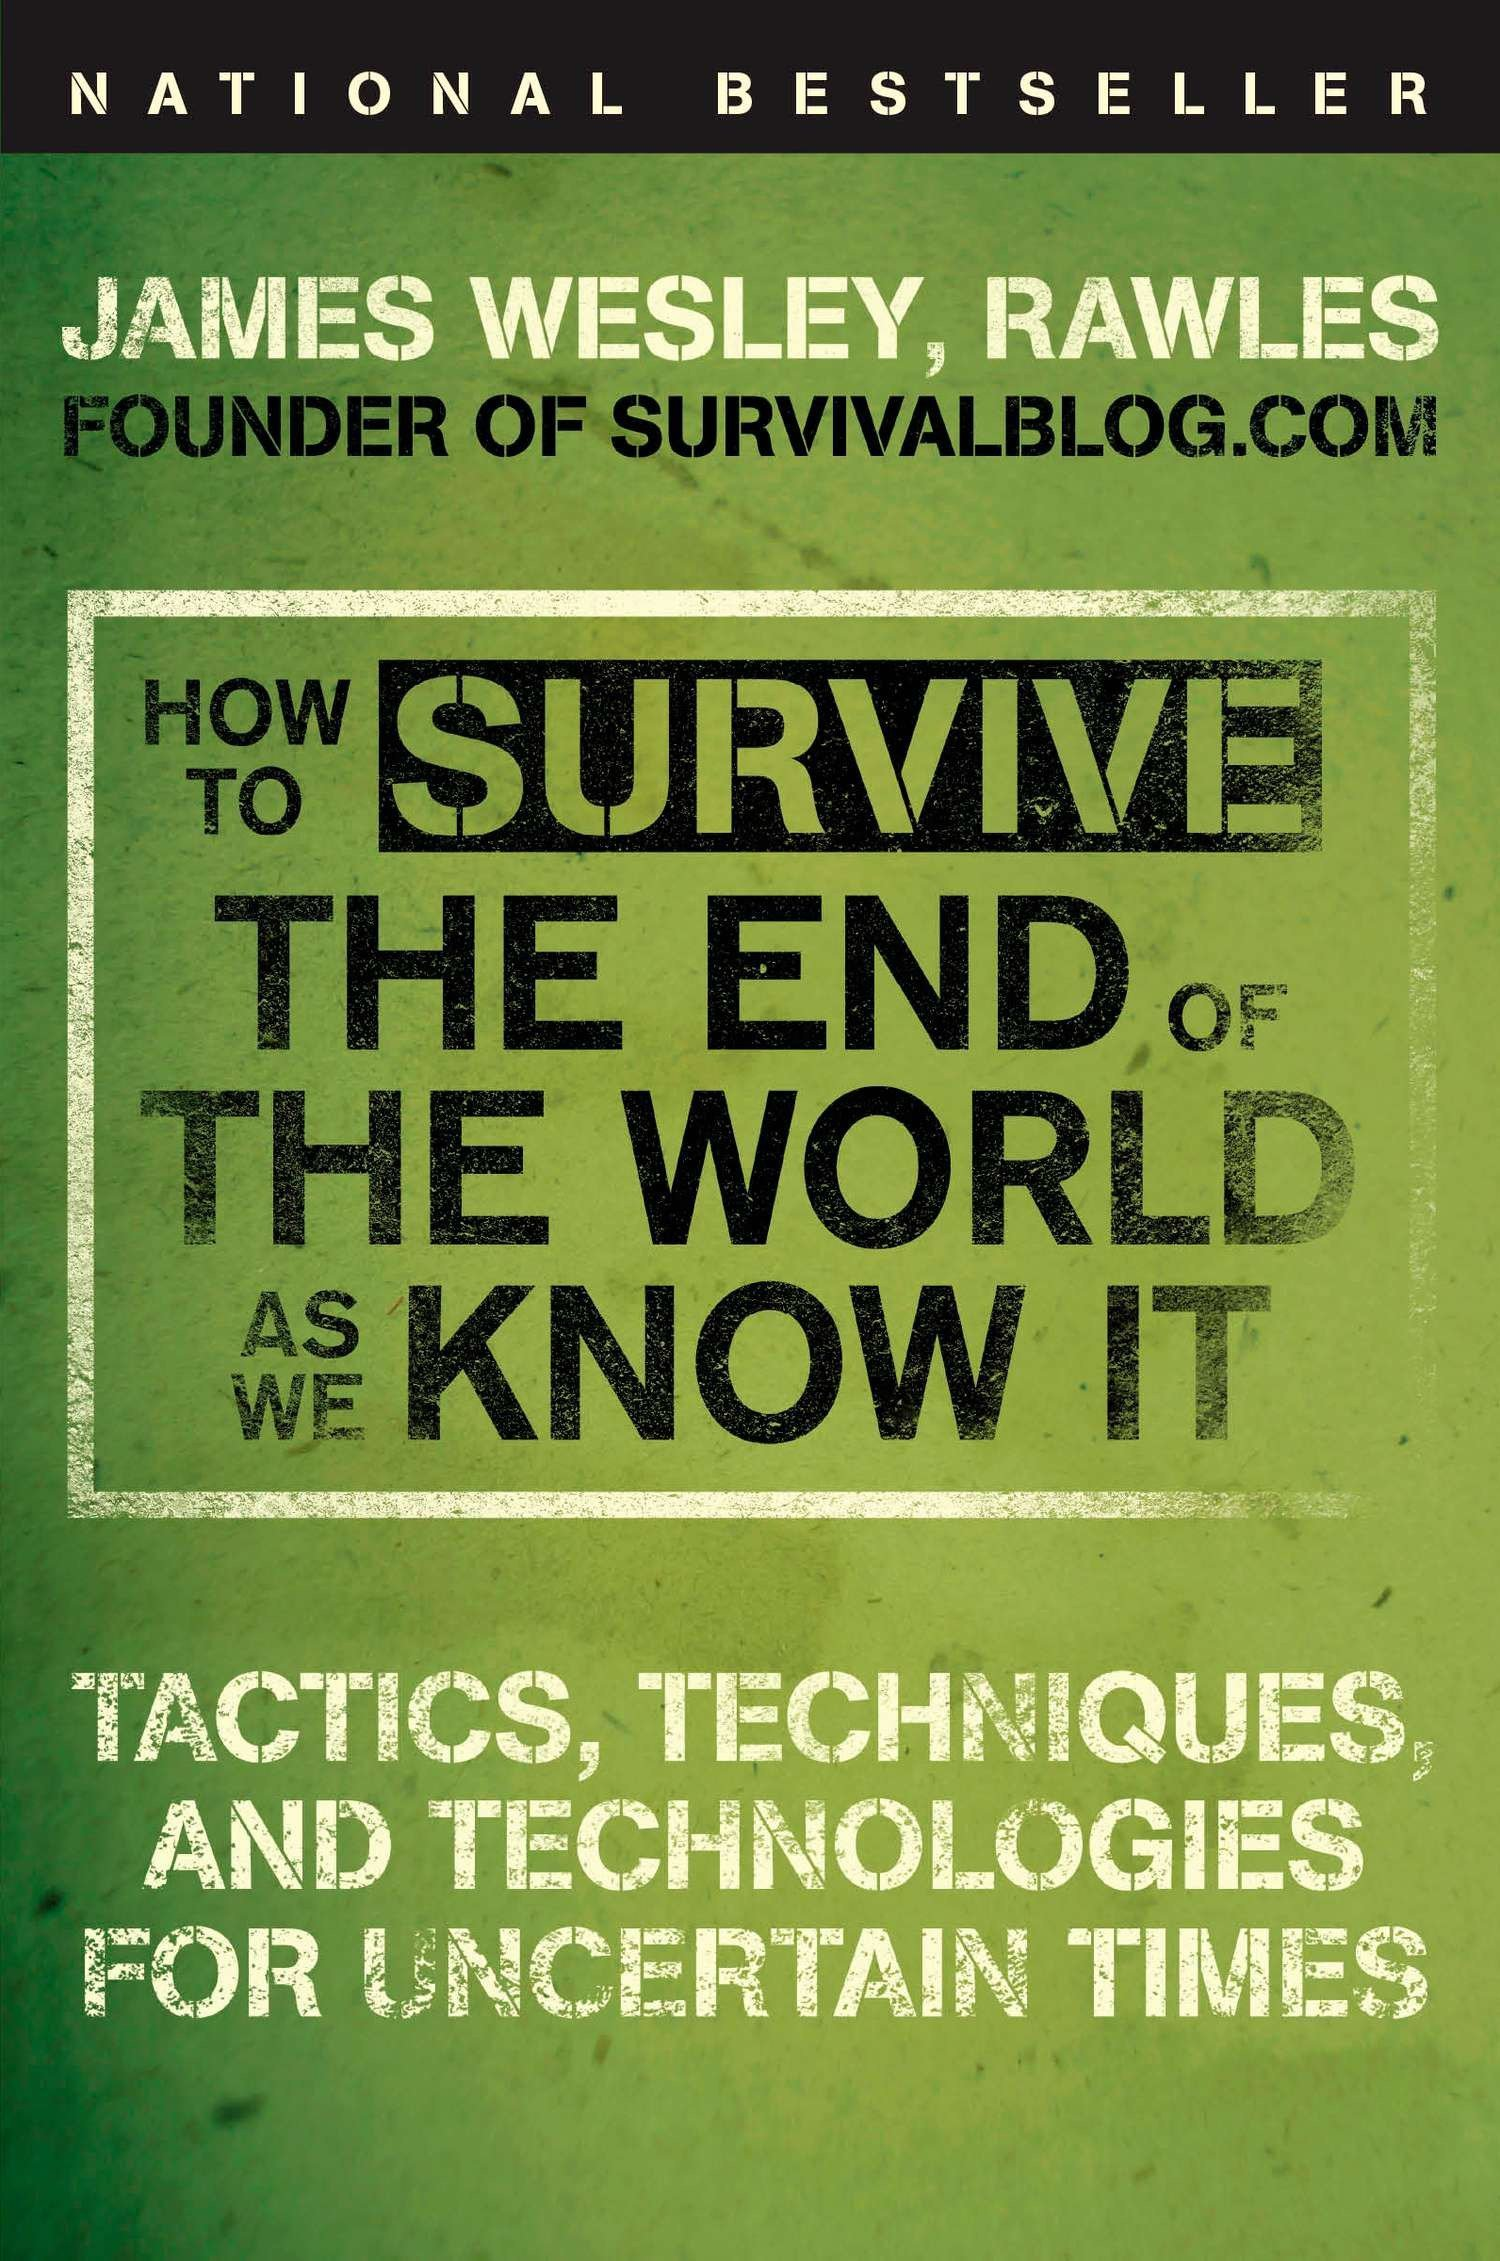 Read Online How to Survive the End of the World as We Know It: Tactics, Techniques, and Technologies for Uncertain Times ePub fb2 book